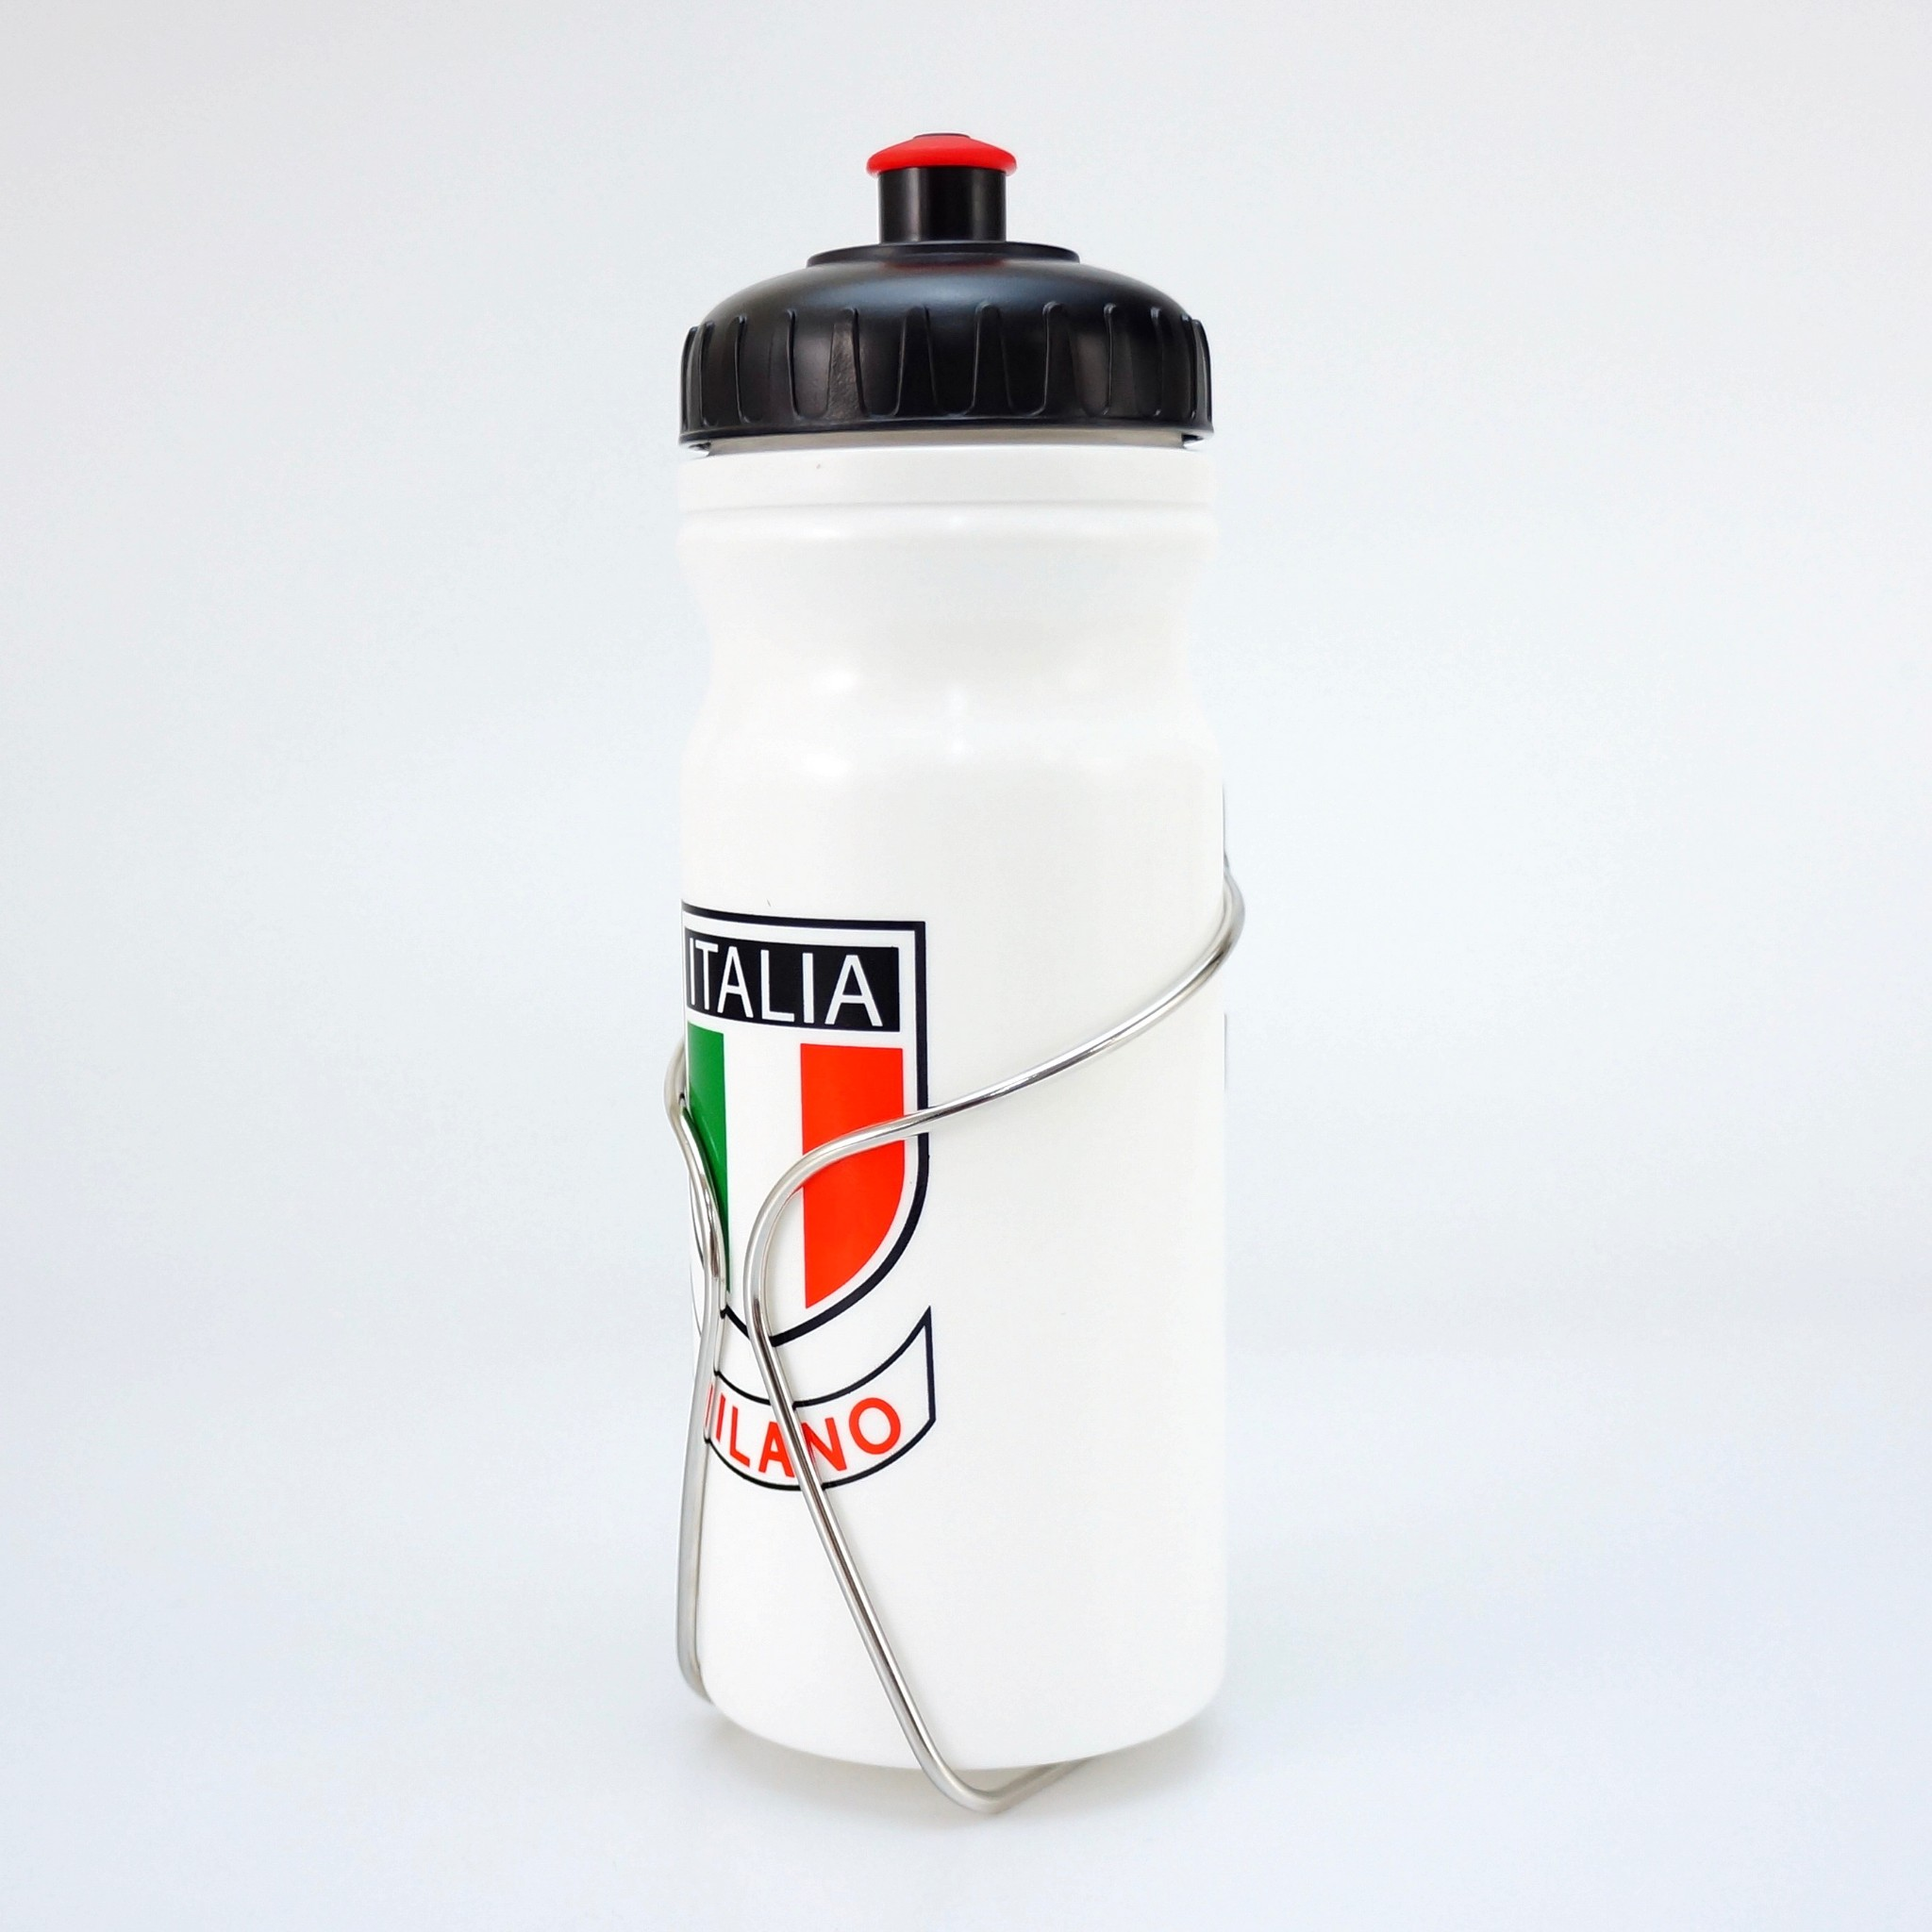 Italia milano thin Design Stainless Cage and Water Bottle for Steel Road Bike